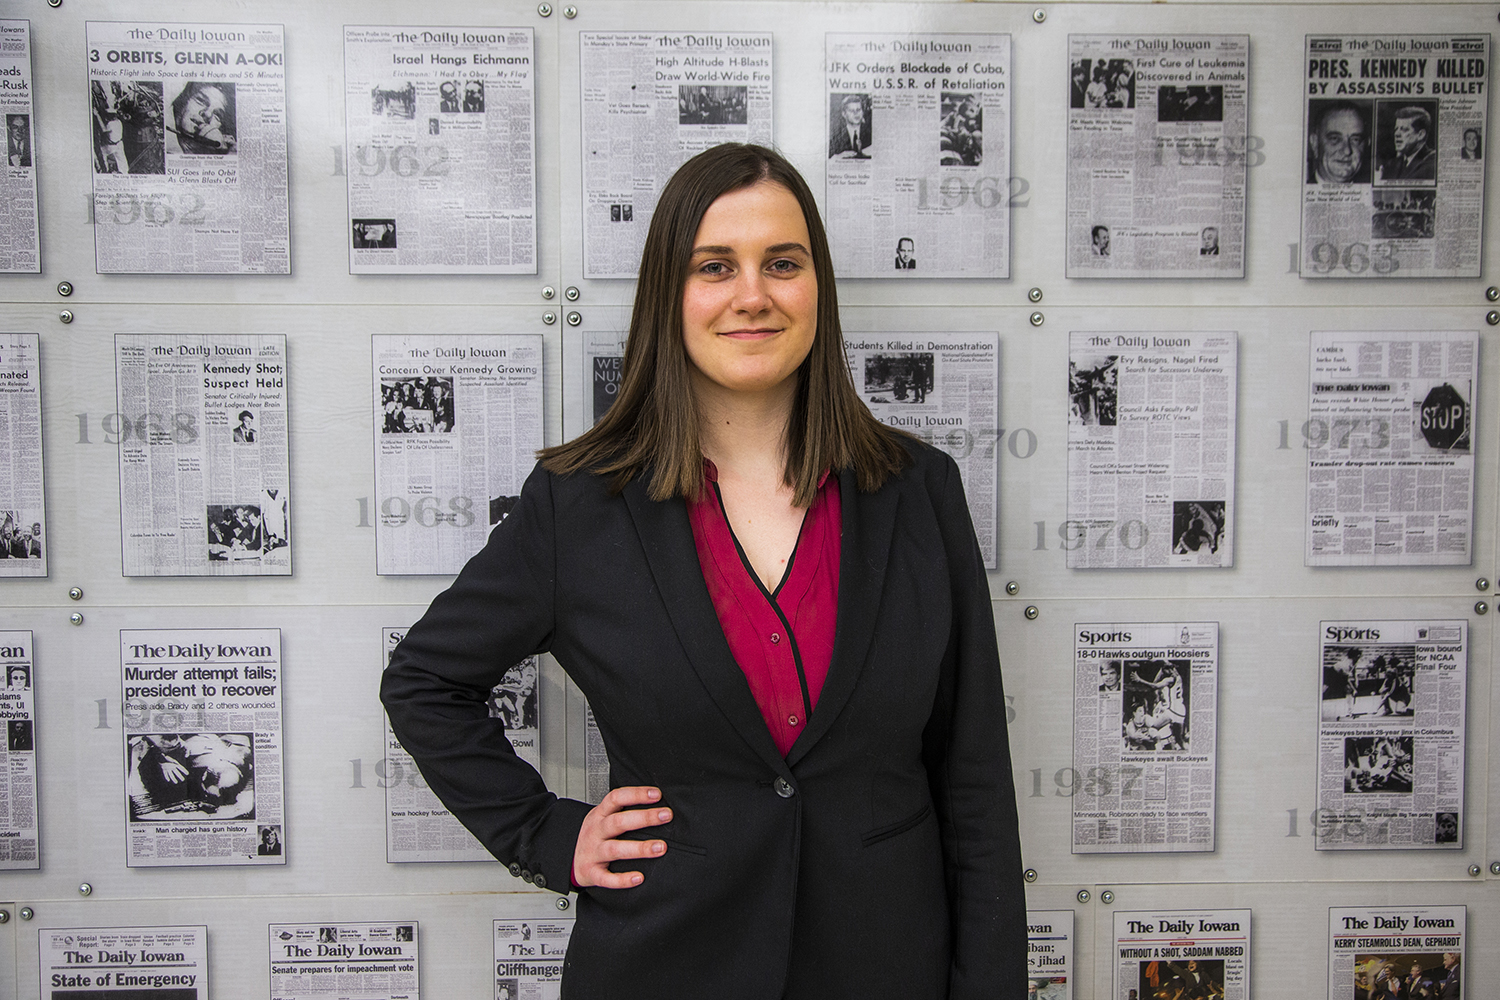 Managing Editor for The Daily Iowan, Marissa Payne, poses for a portrait in the Adler Journalism Building on Monday, March 4, 2019. Payne will be the new editor-in-chief next year.